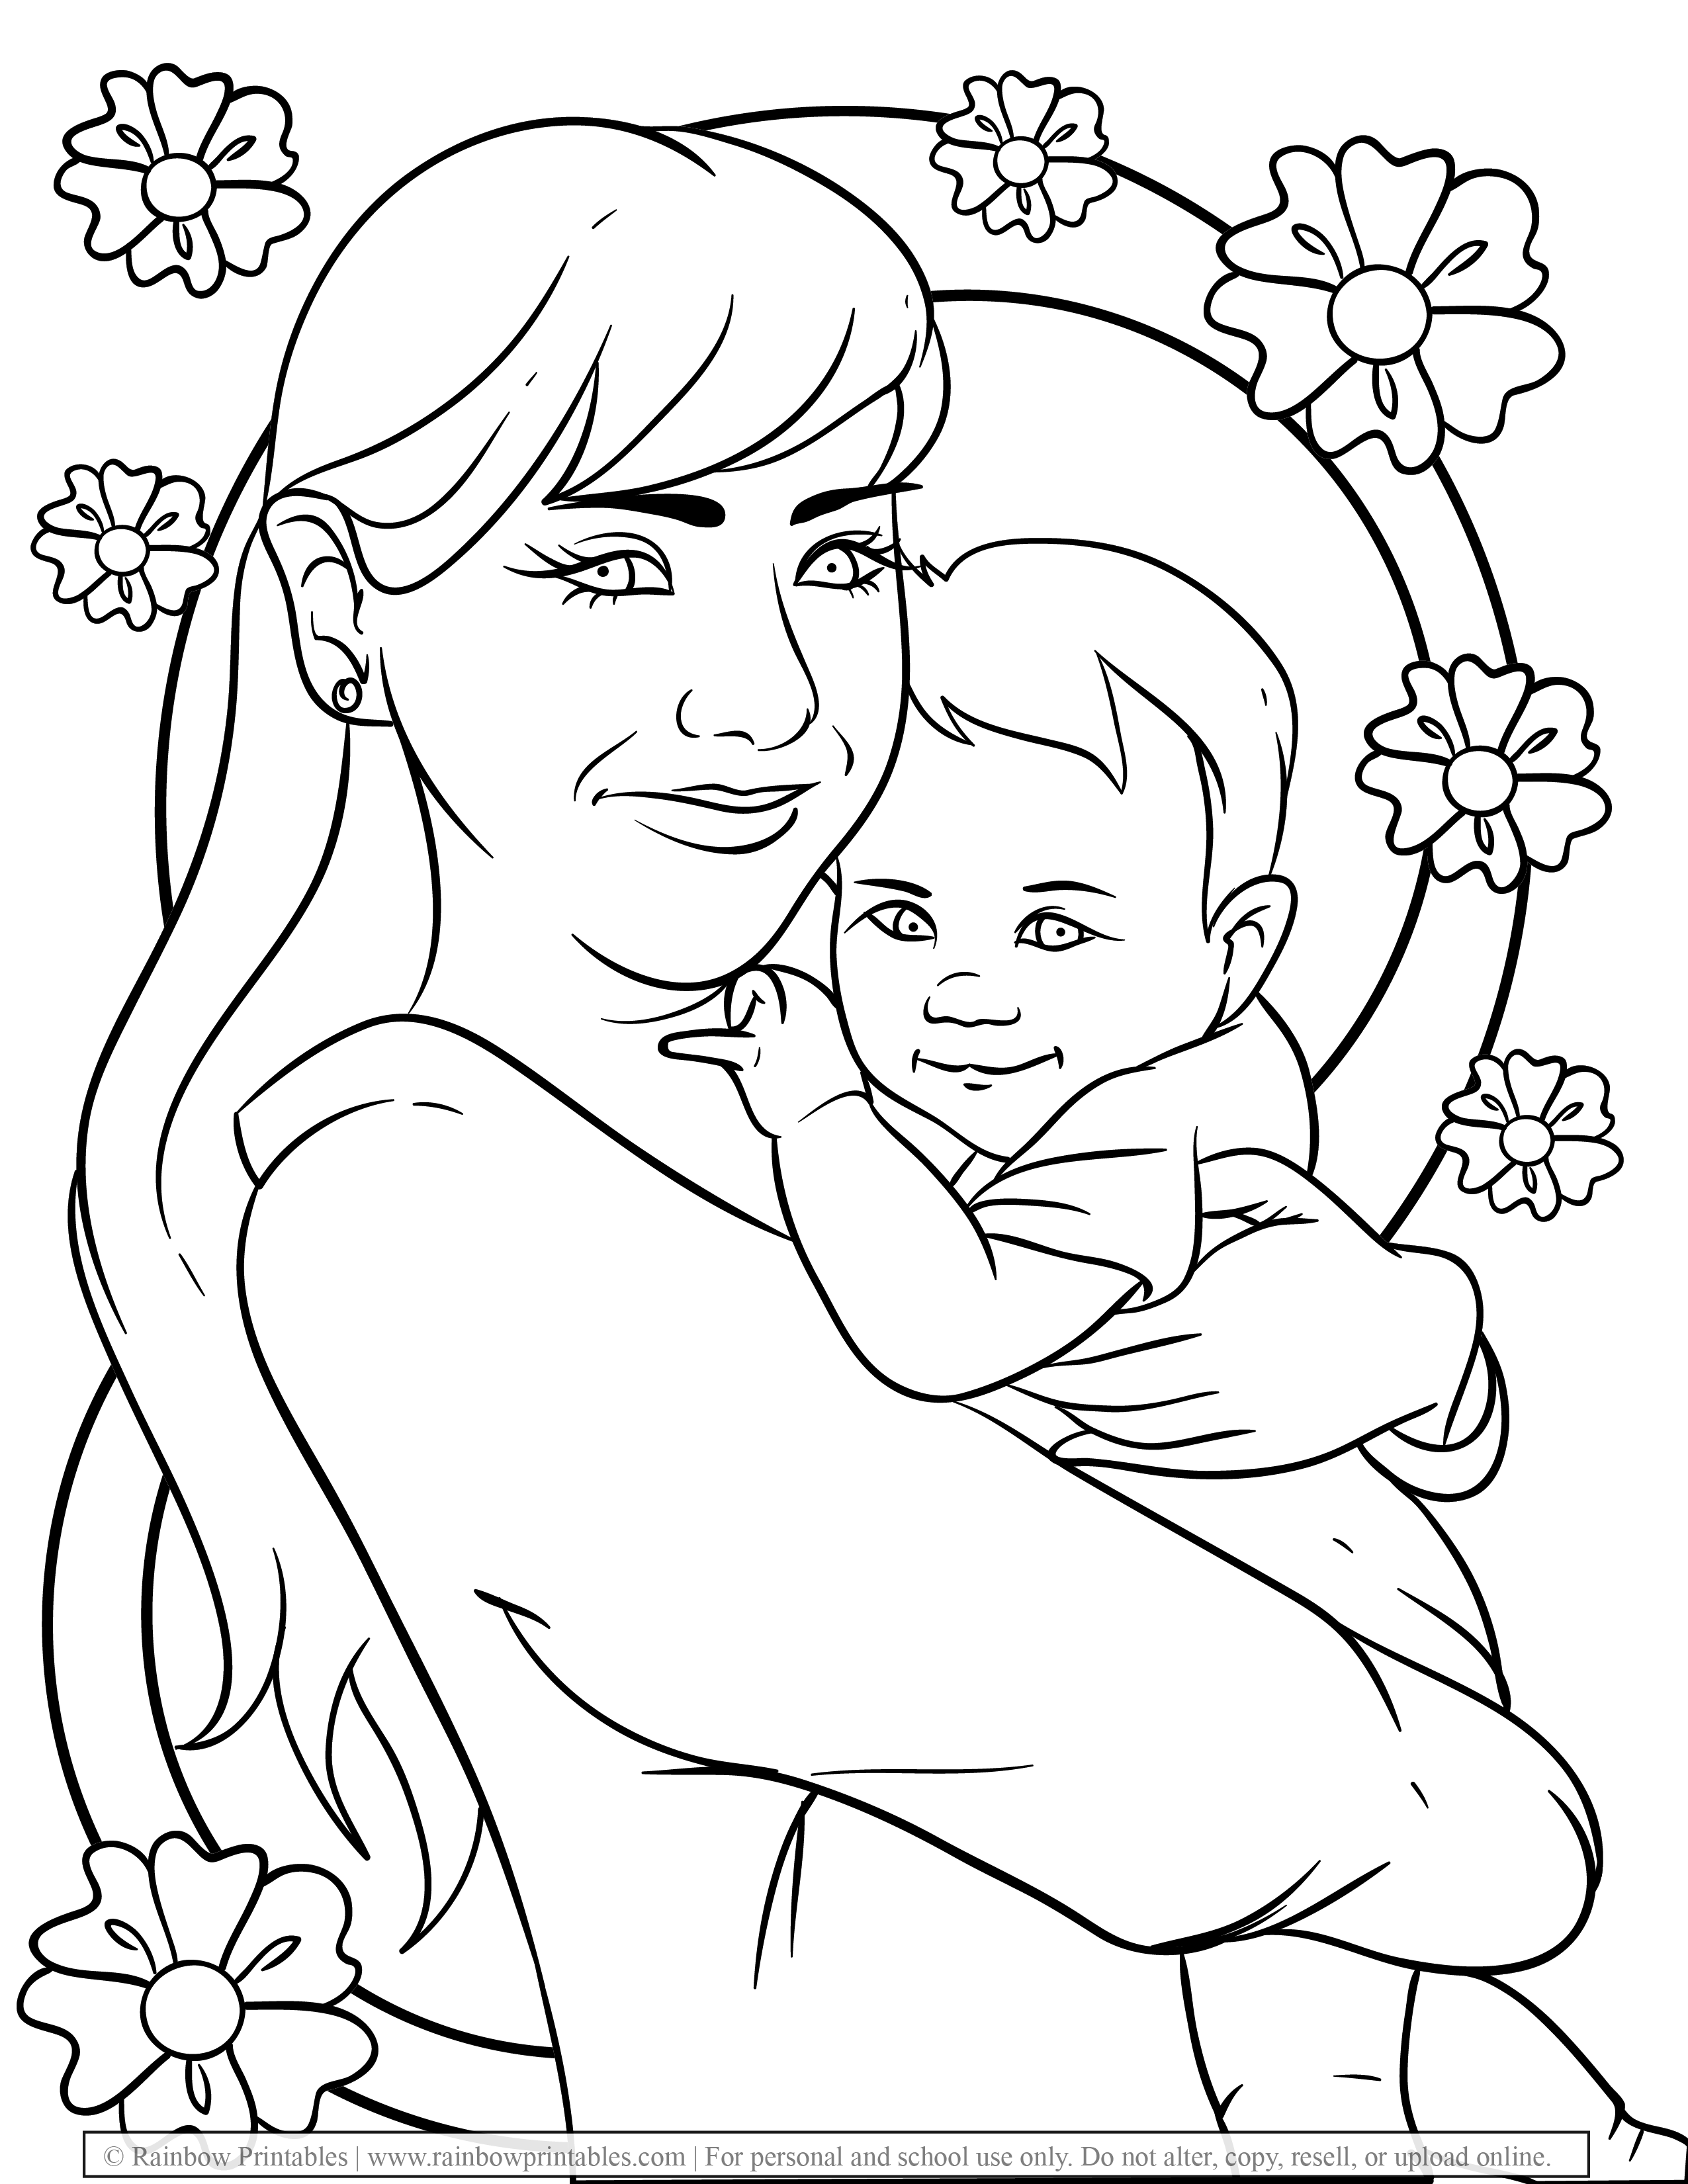 Free Coloring Pages for Kids Drawing Activities Line Art Illustration MOM and Toddler Child Baby Love Flowers Happy MOTHER'S DAY (2)